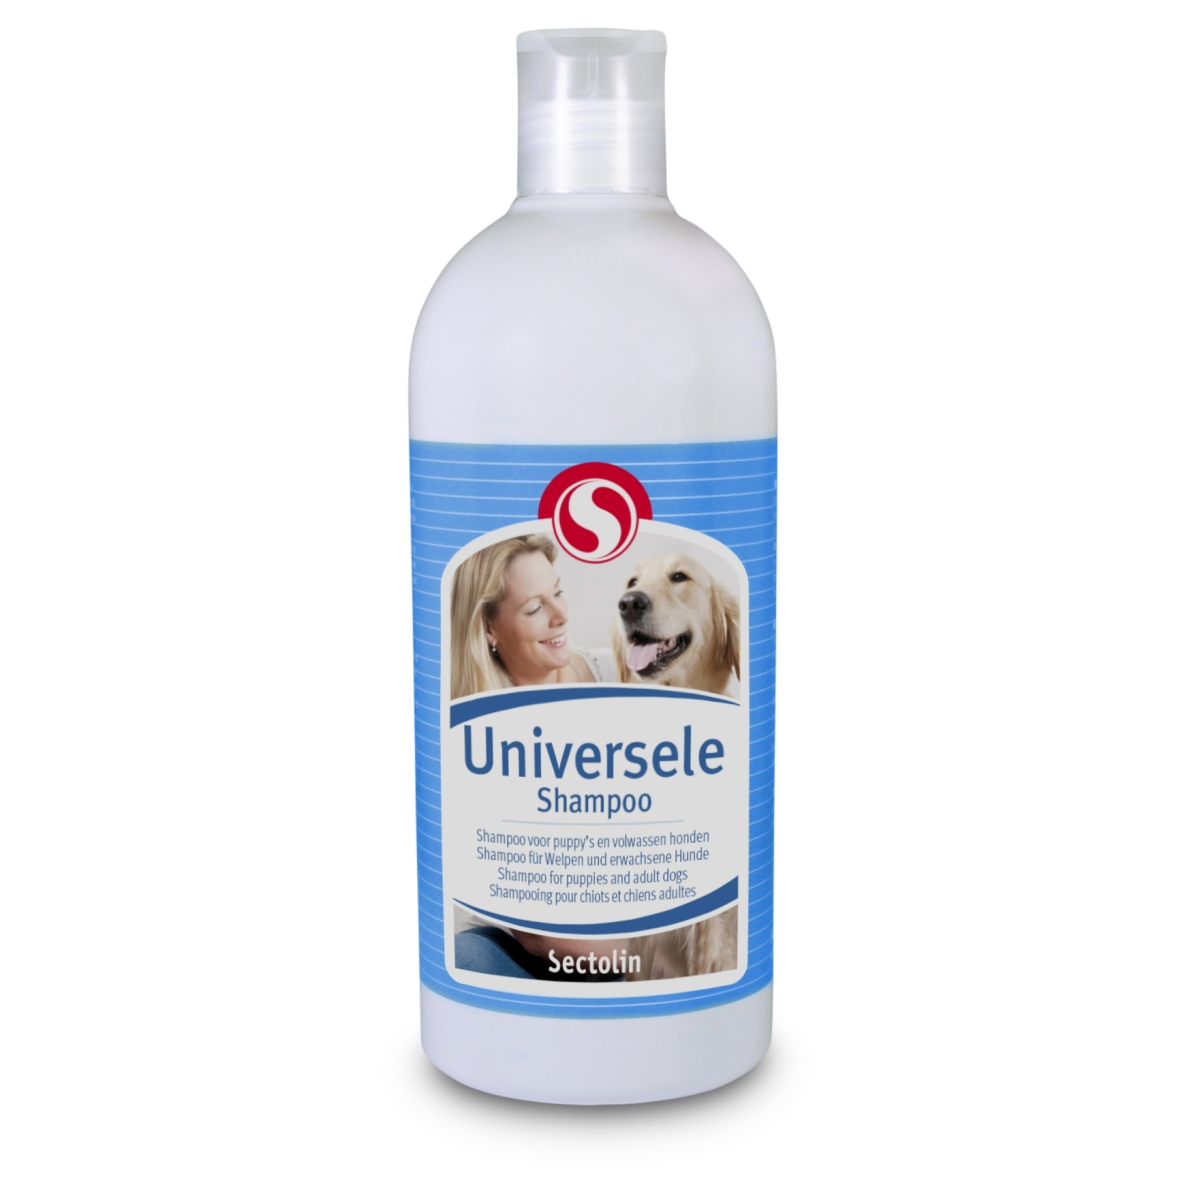 SEC UNIVERSELE SHAMPOO 500ML 00001